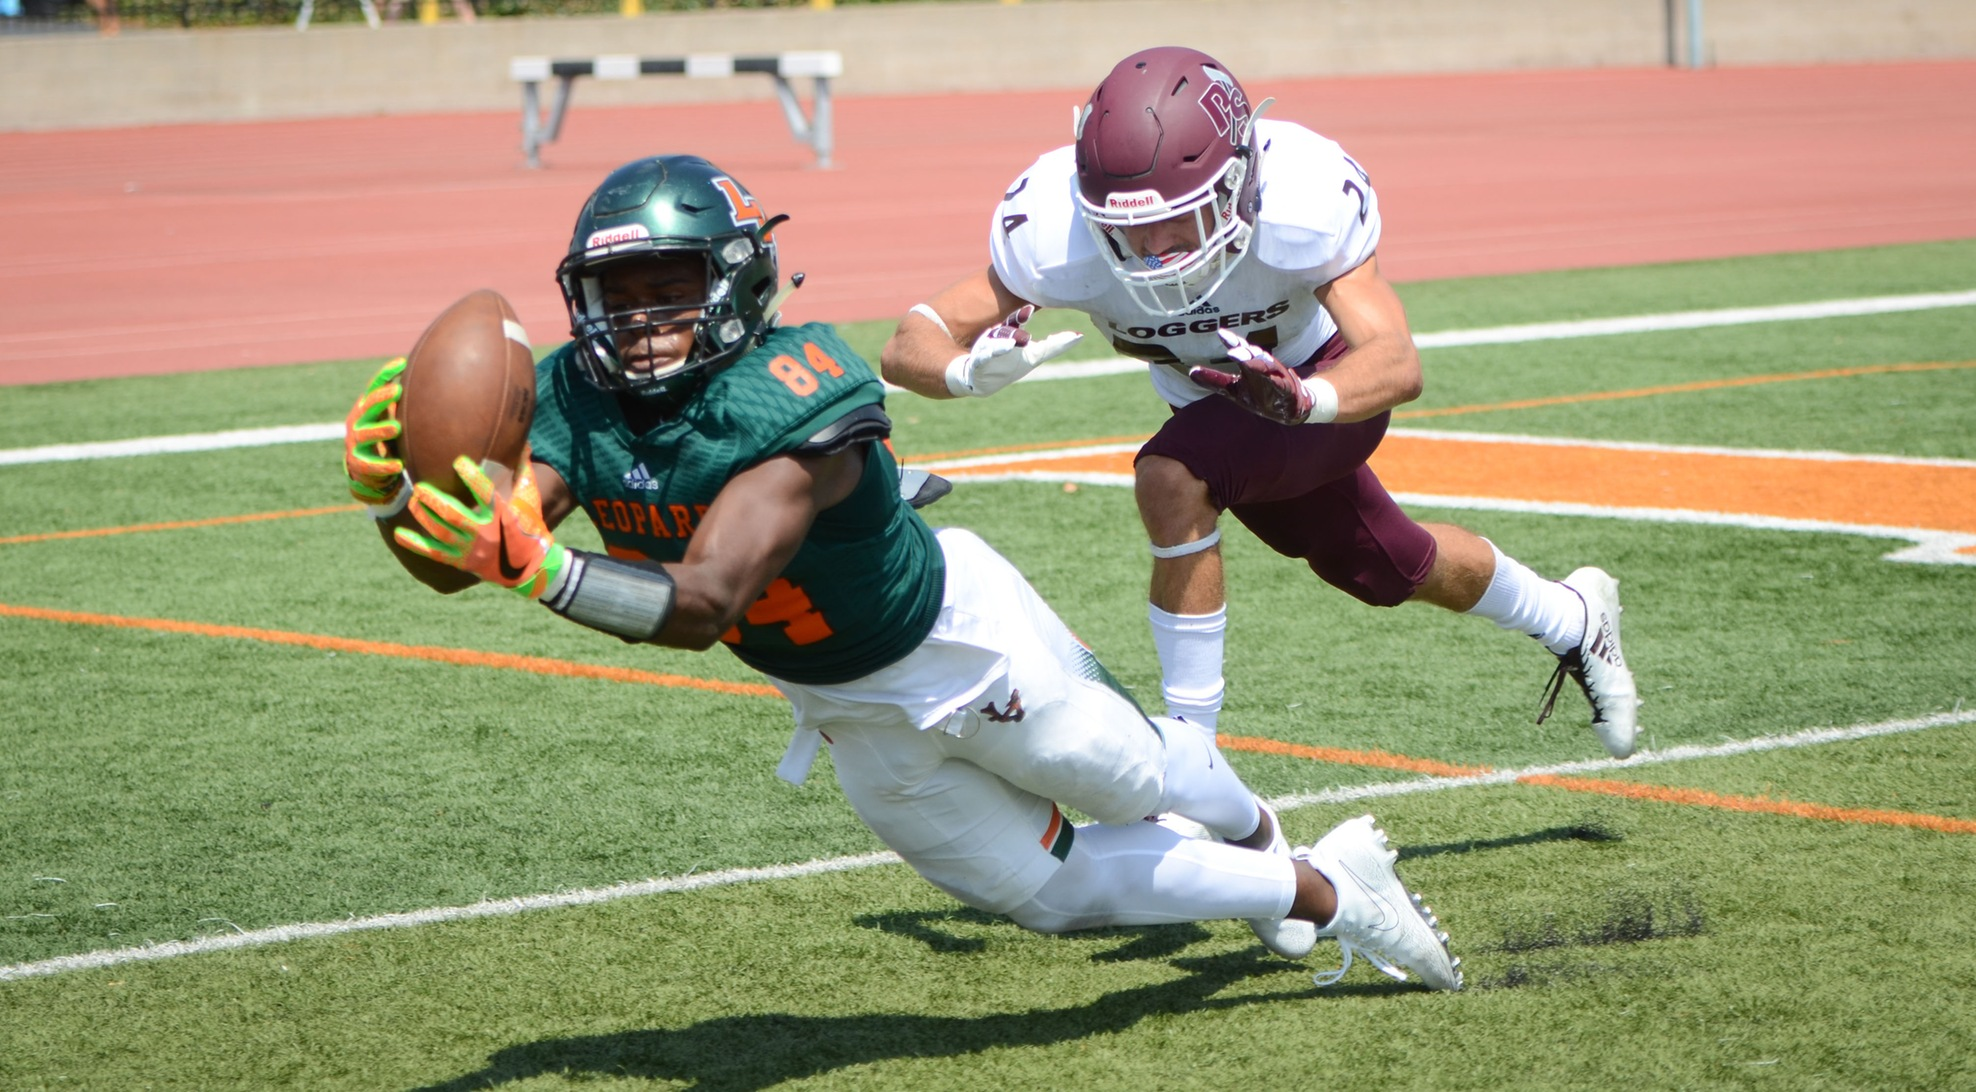 Football opens season with win over Puget Sound